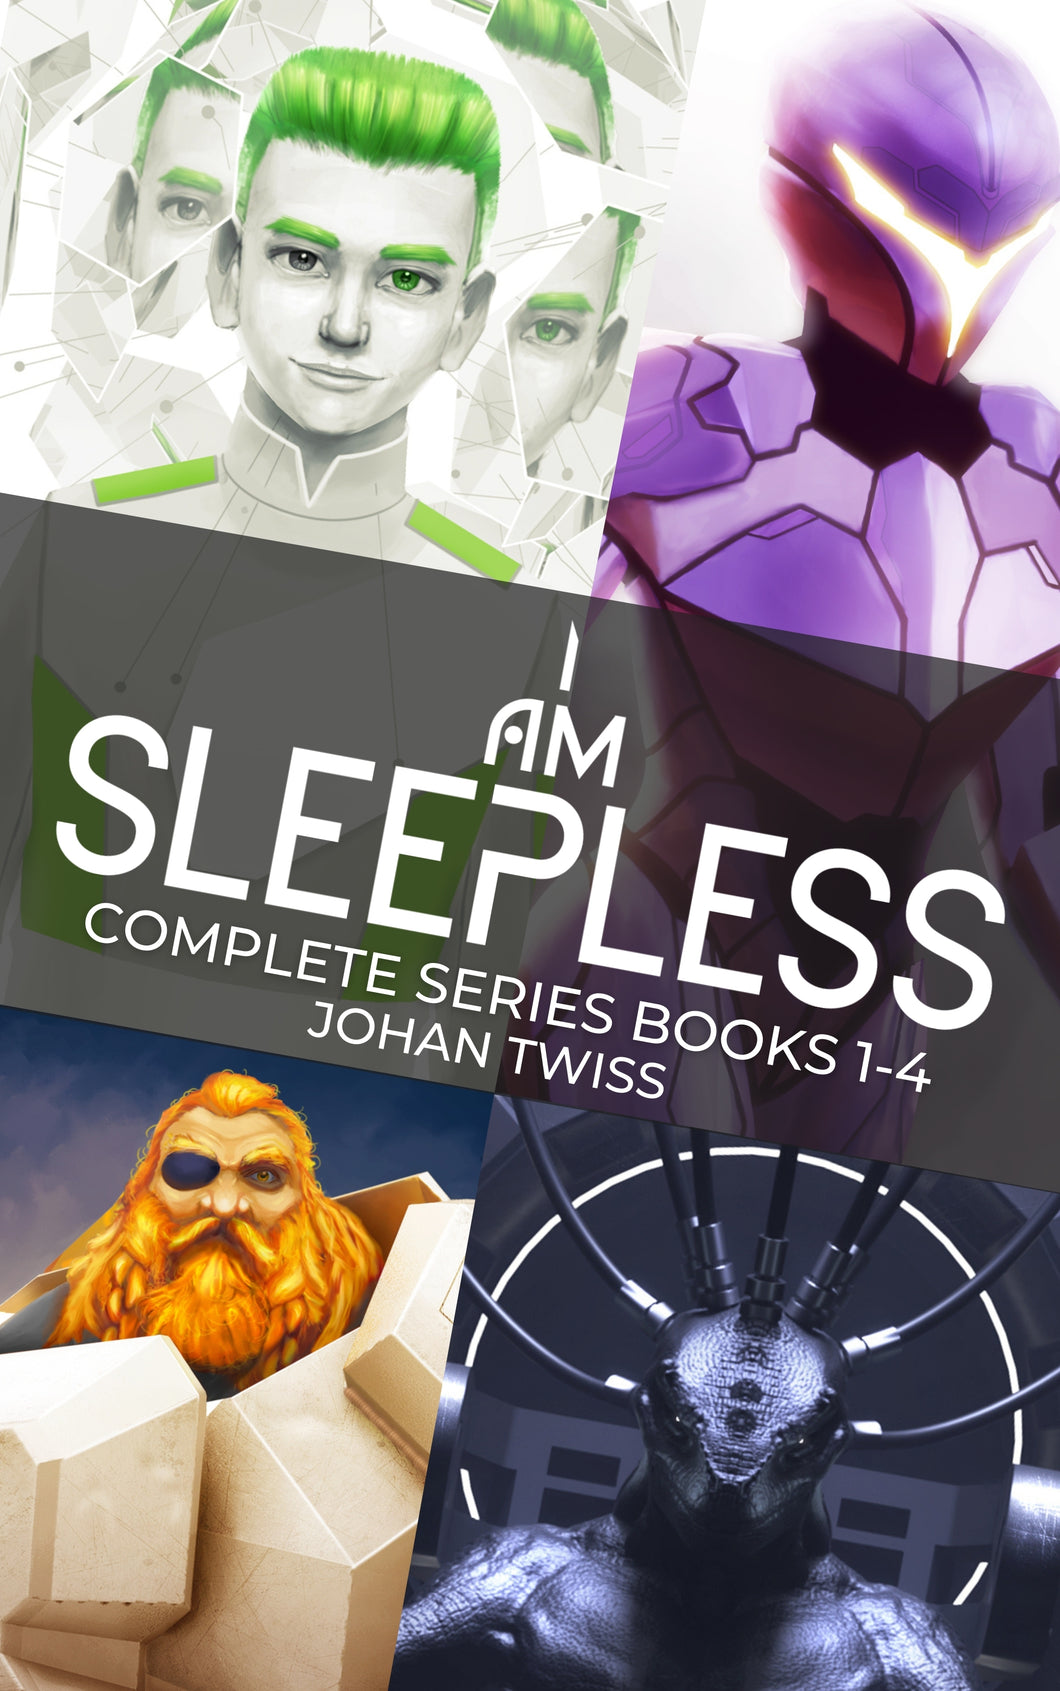 I Am Sleepless Complete Series Books 1-4 (Signed Paperbacks)